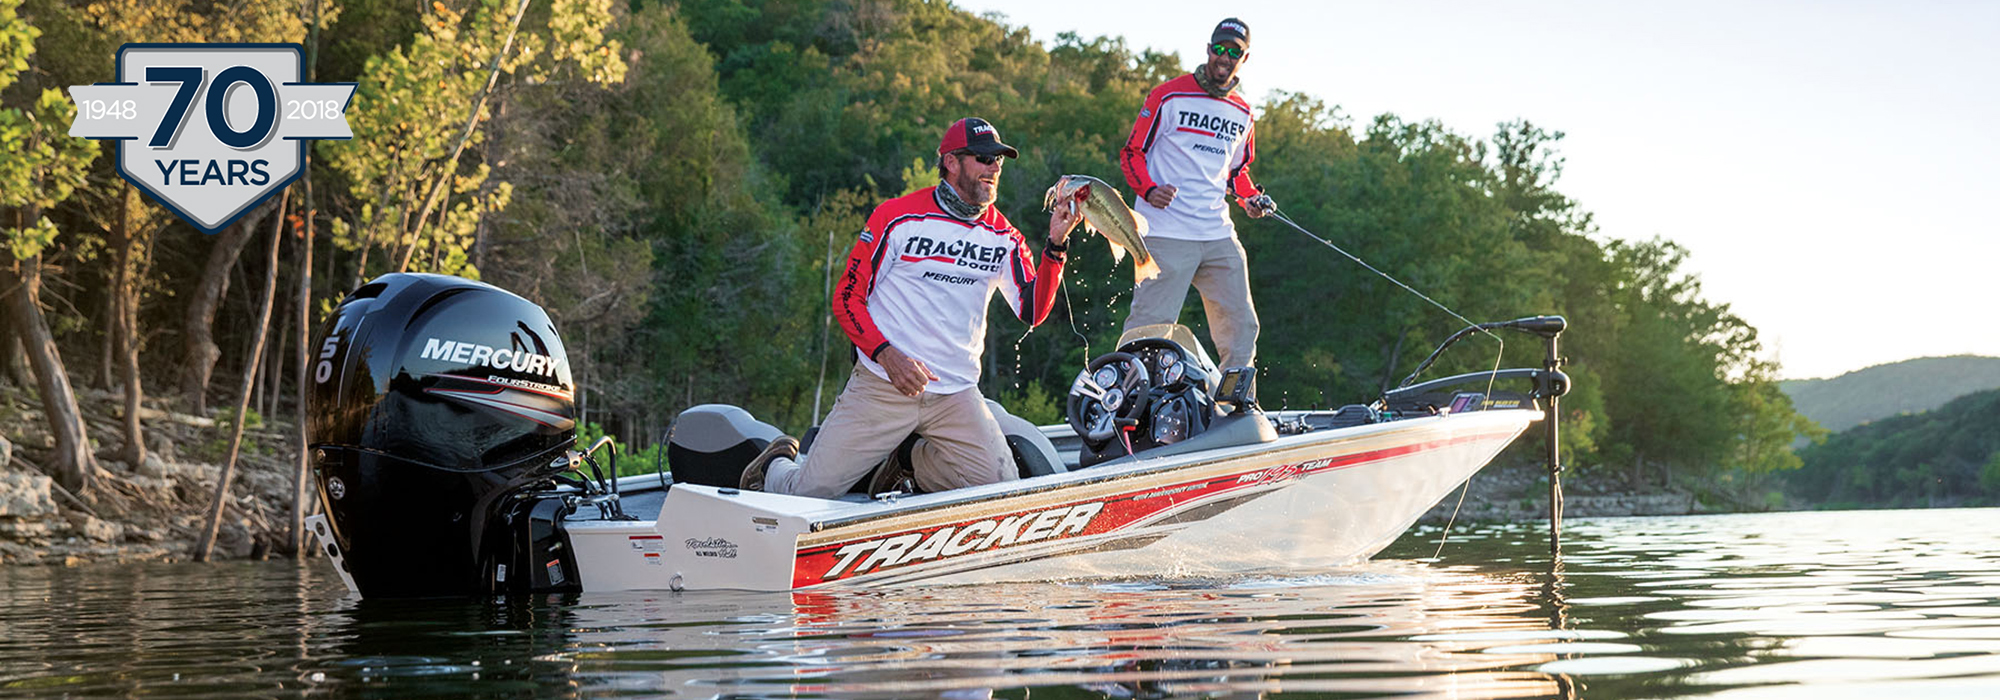 Tracker Bass Pro Team 195